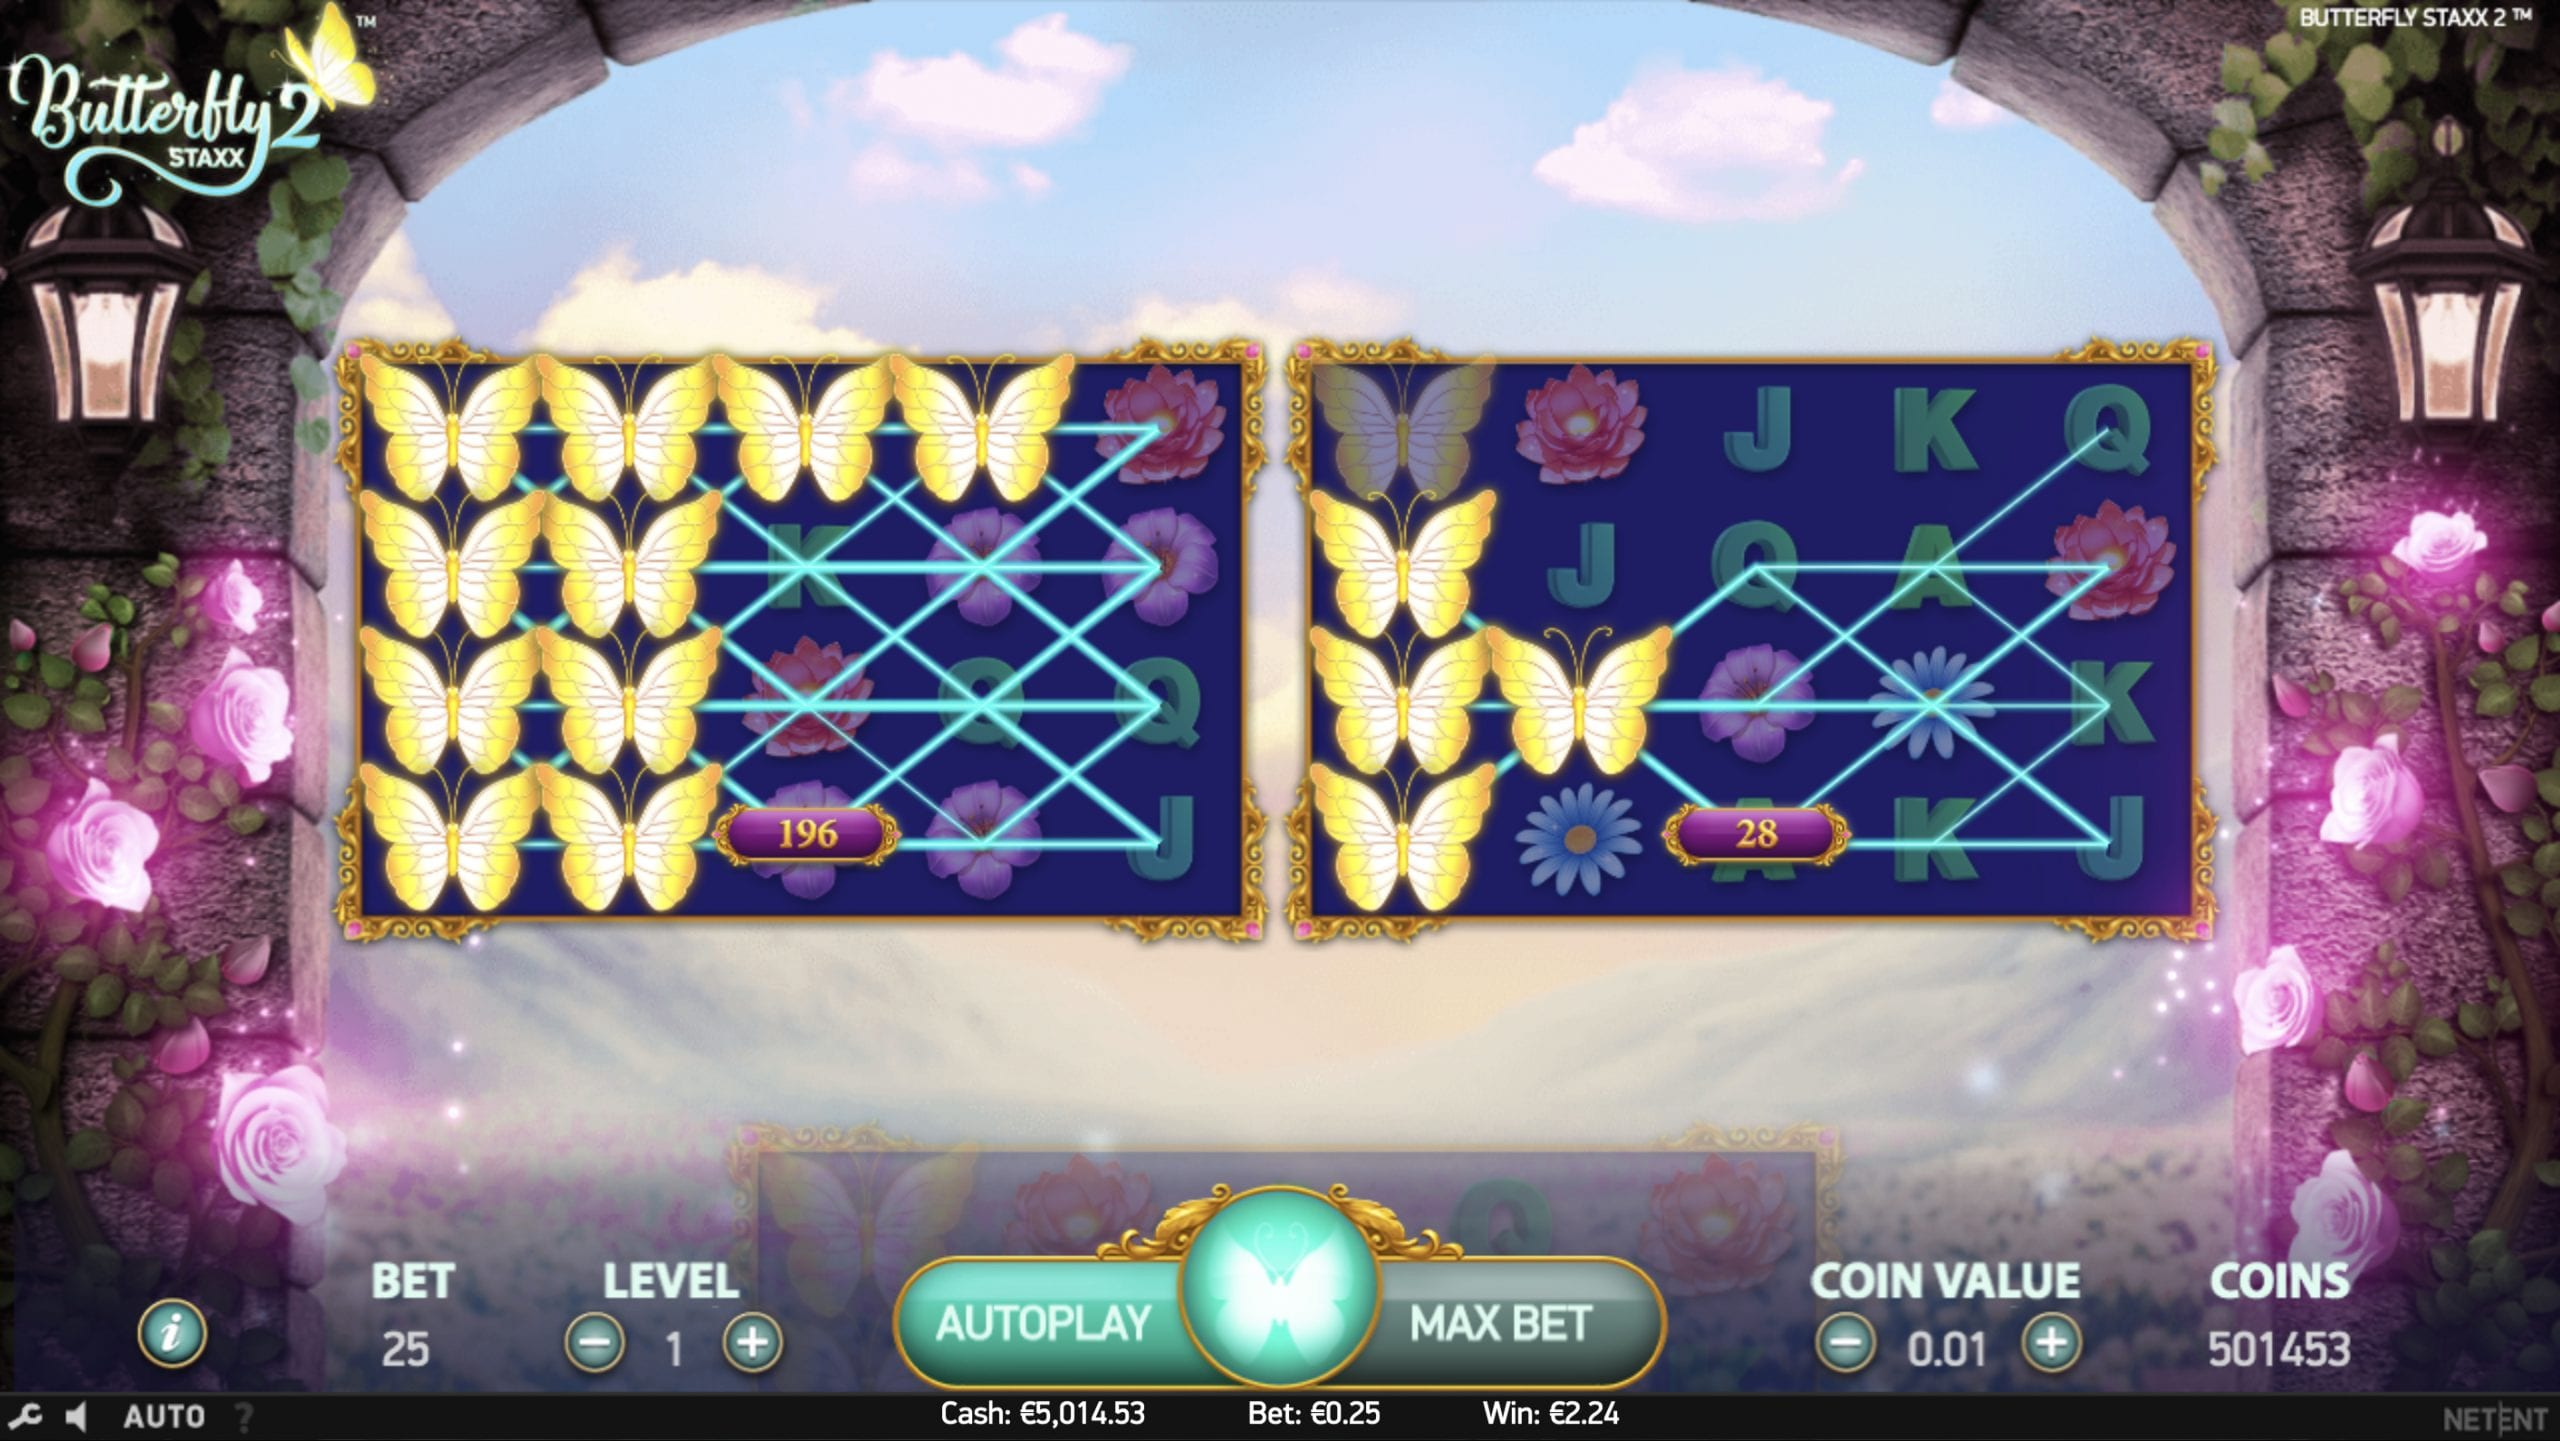 Butterfly Staxx 2 slot review